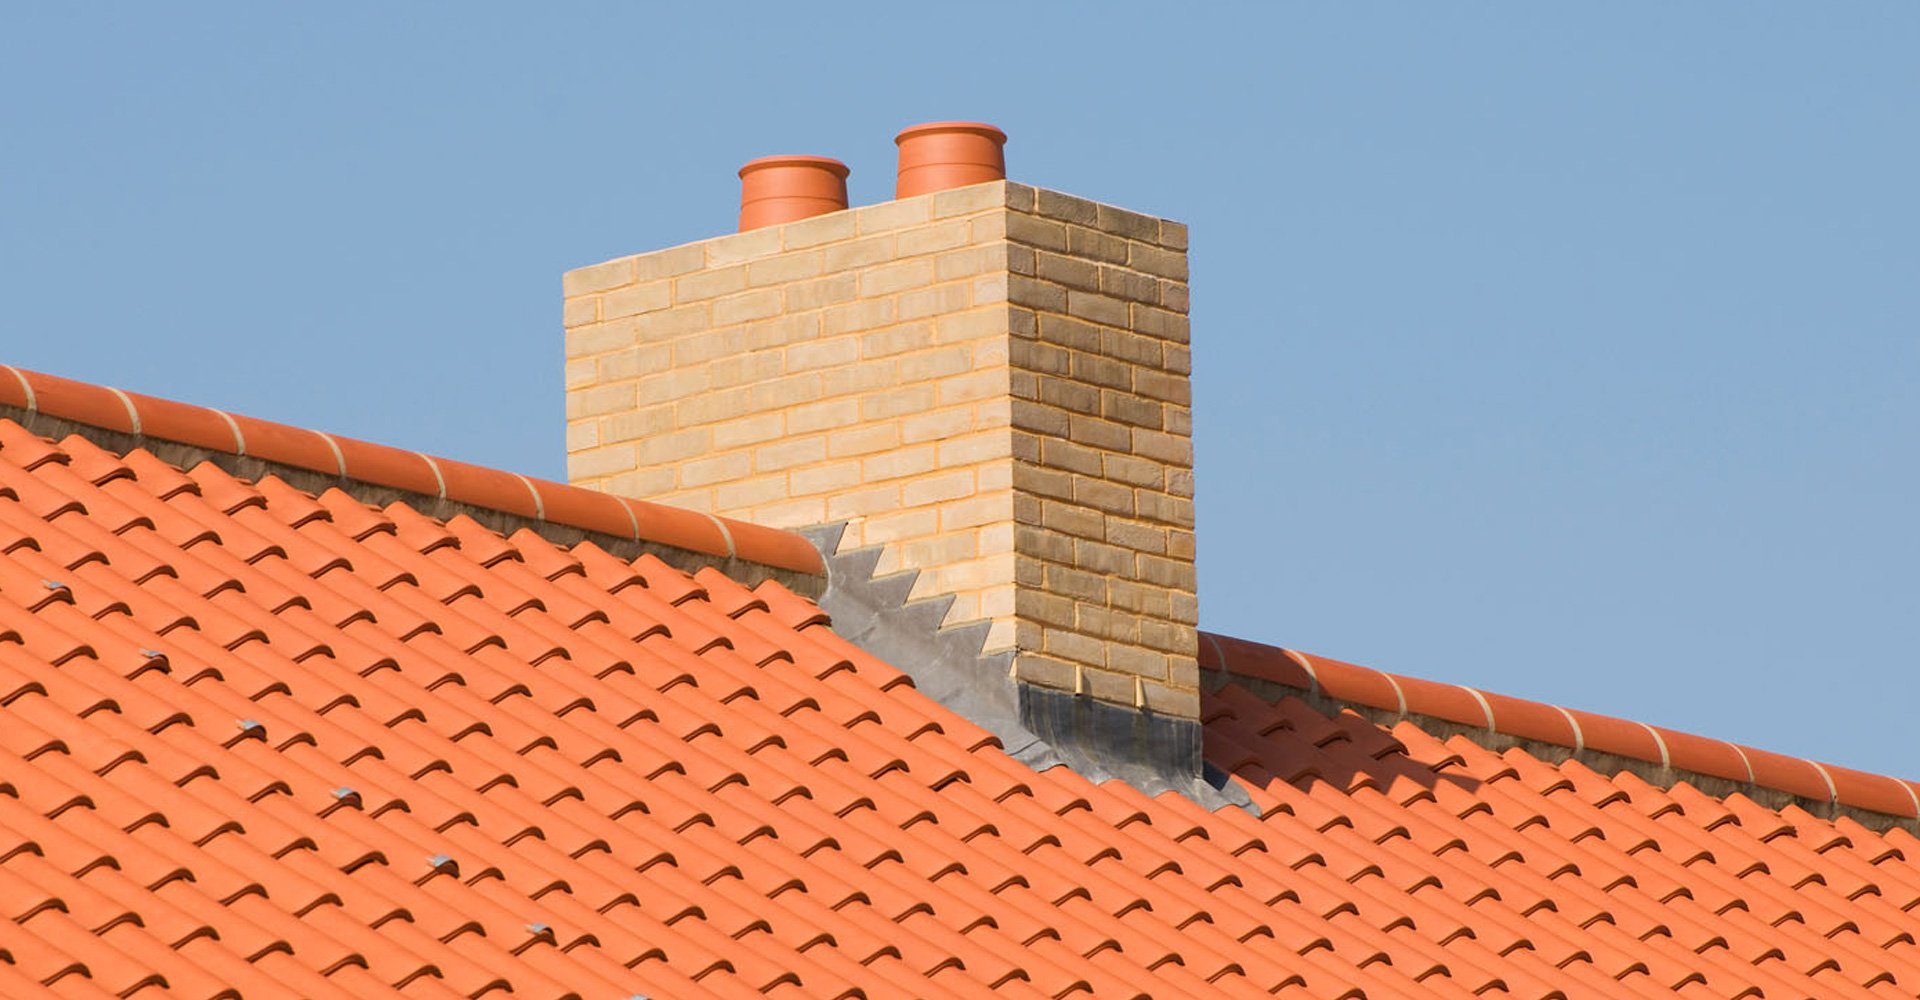 What To Expect When Hiring Chimney Cleaning Service? - Lets House Share